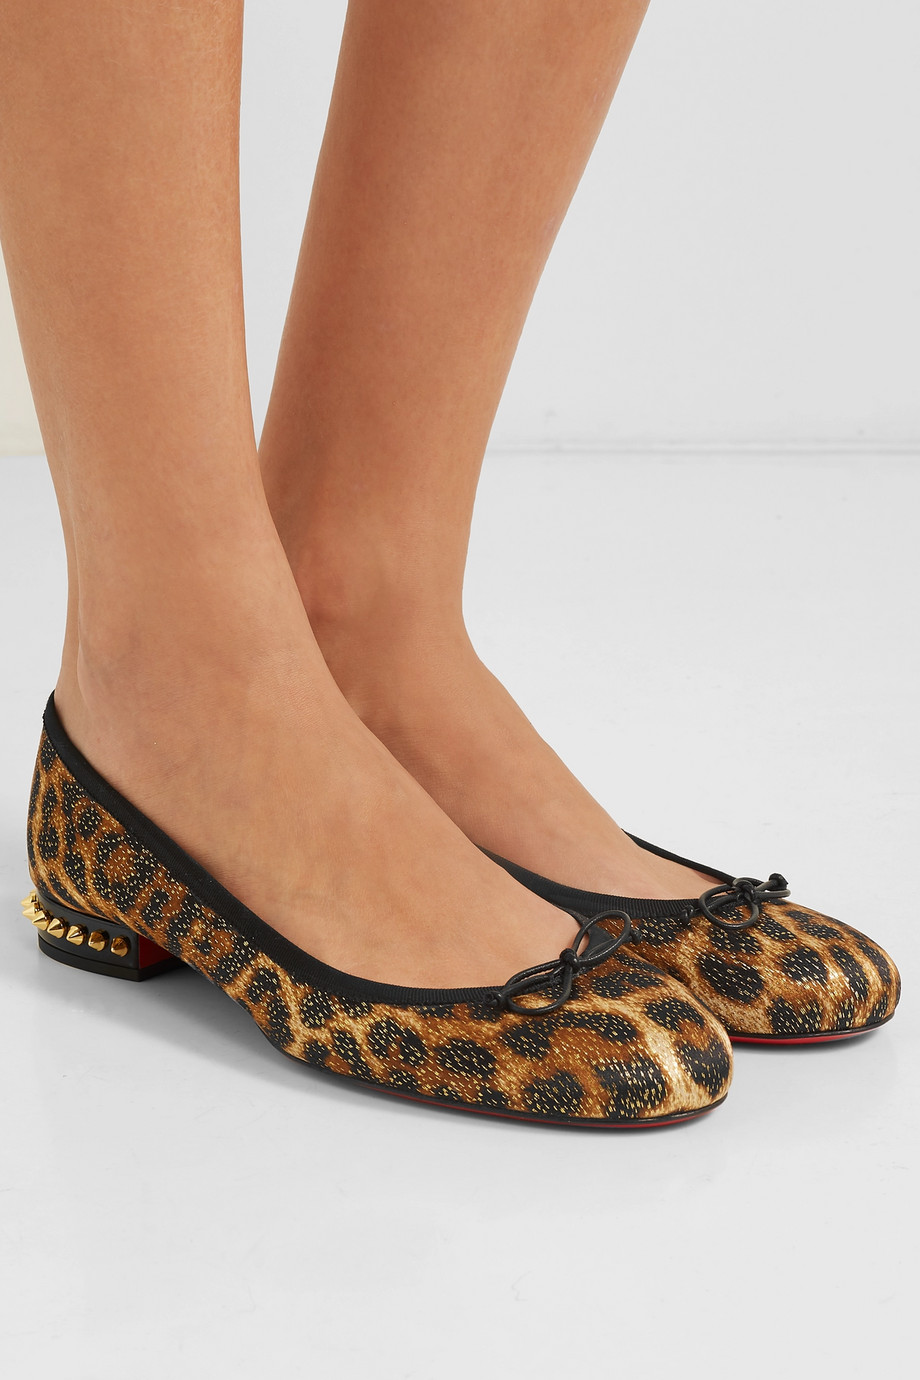 Christian Louboutin La Massine spiked leopard-print satin and leather ballet flats